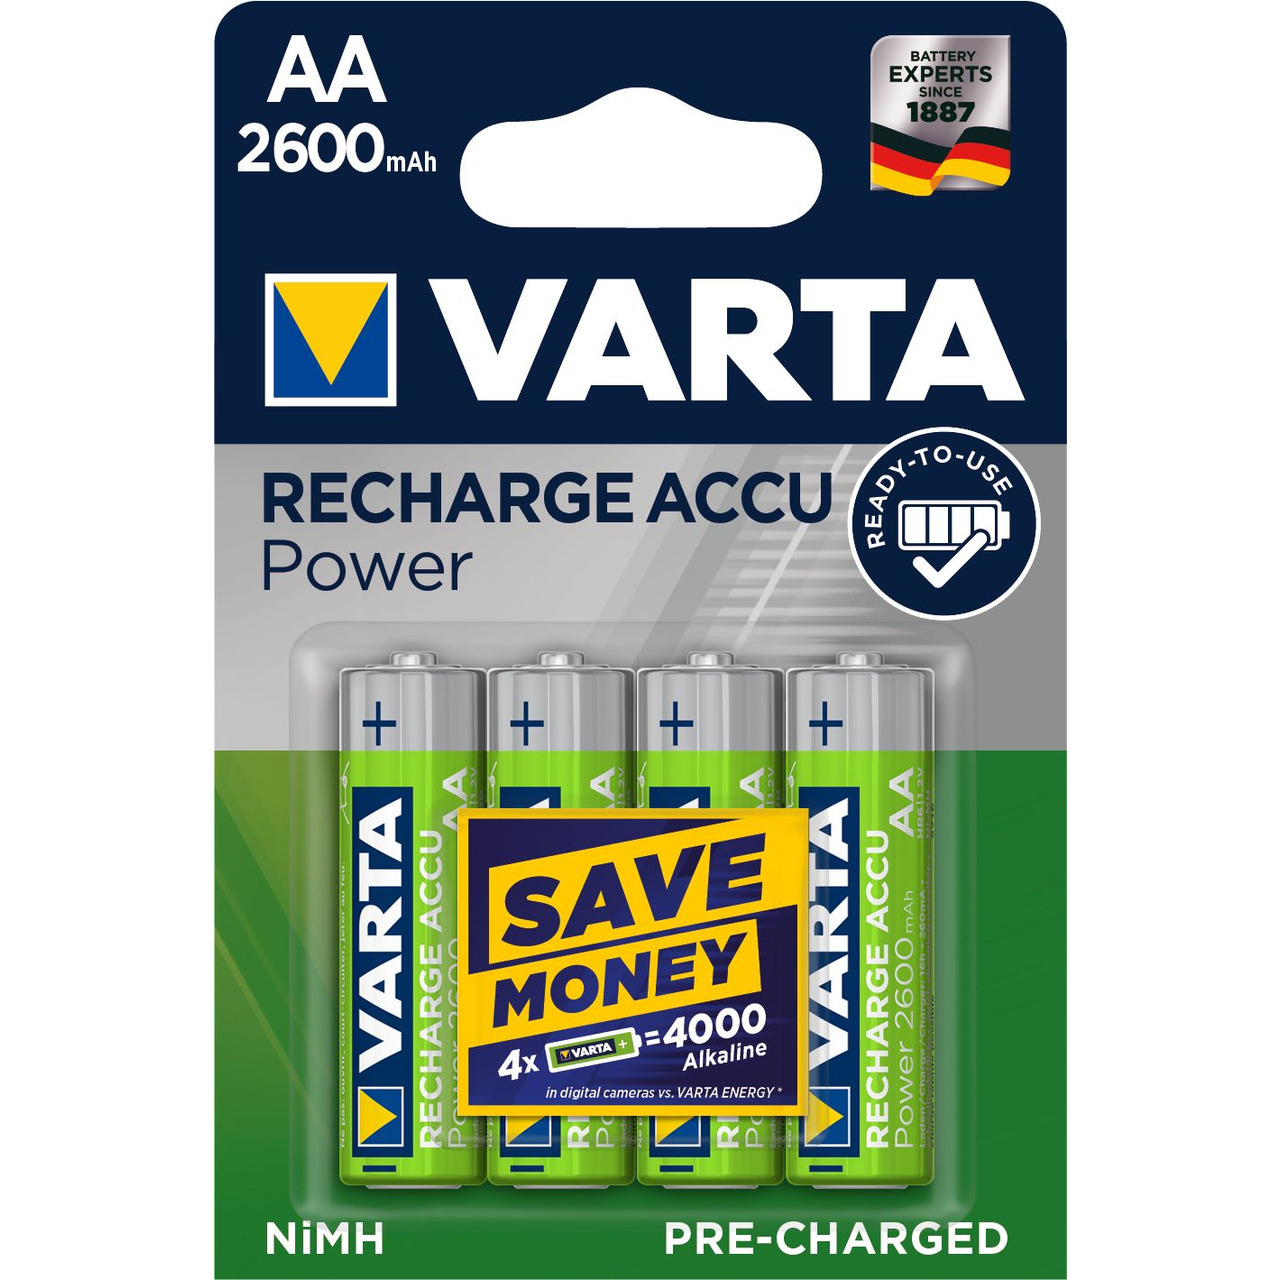 Varta Recharge Akku Power AA 2600mAh- 4er Pack